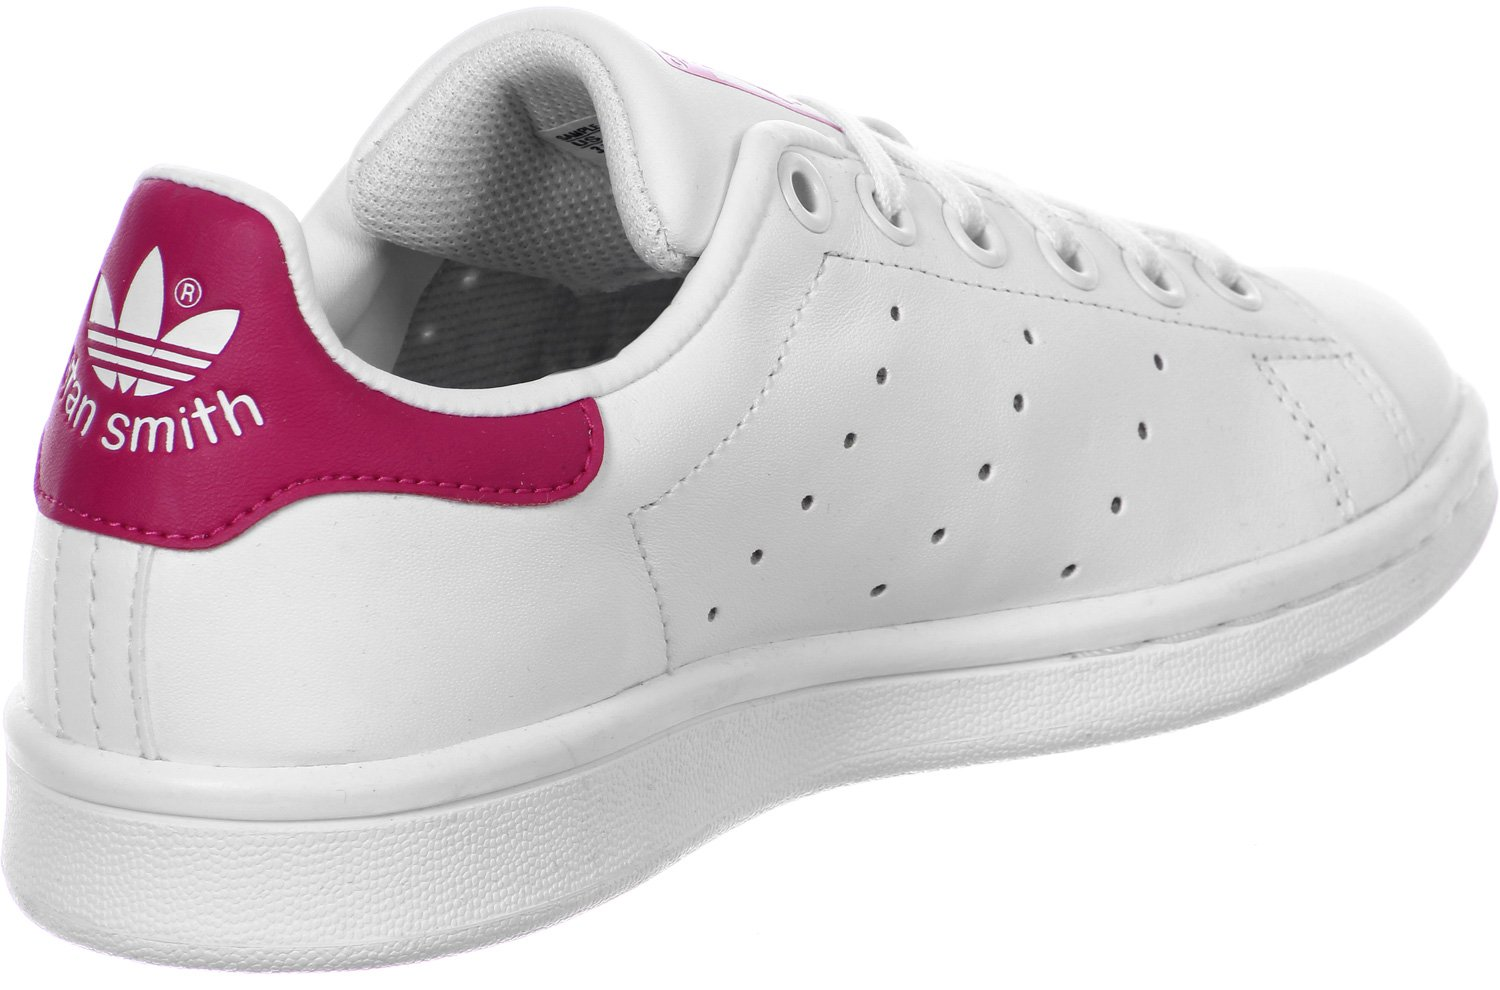 quality design 45f71 95289 adidas - Stan Smith - B32703 - Color: White-Pink - Size: 4.0